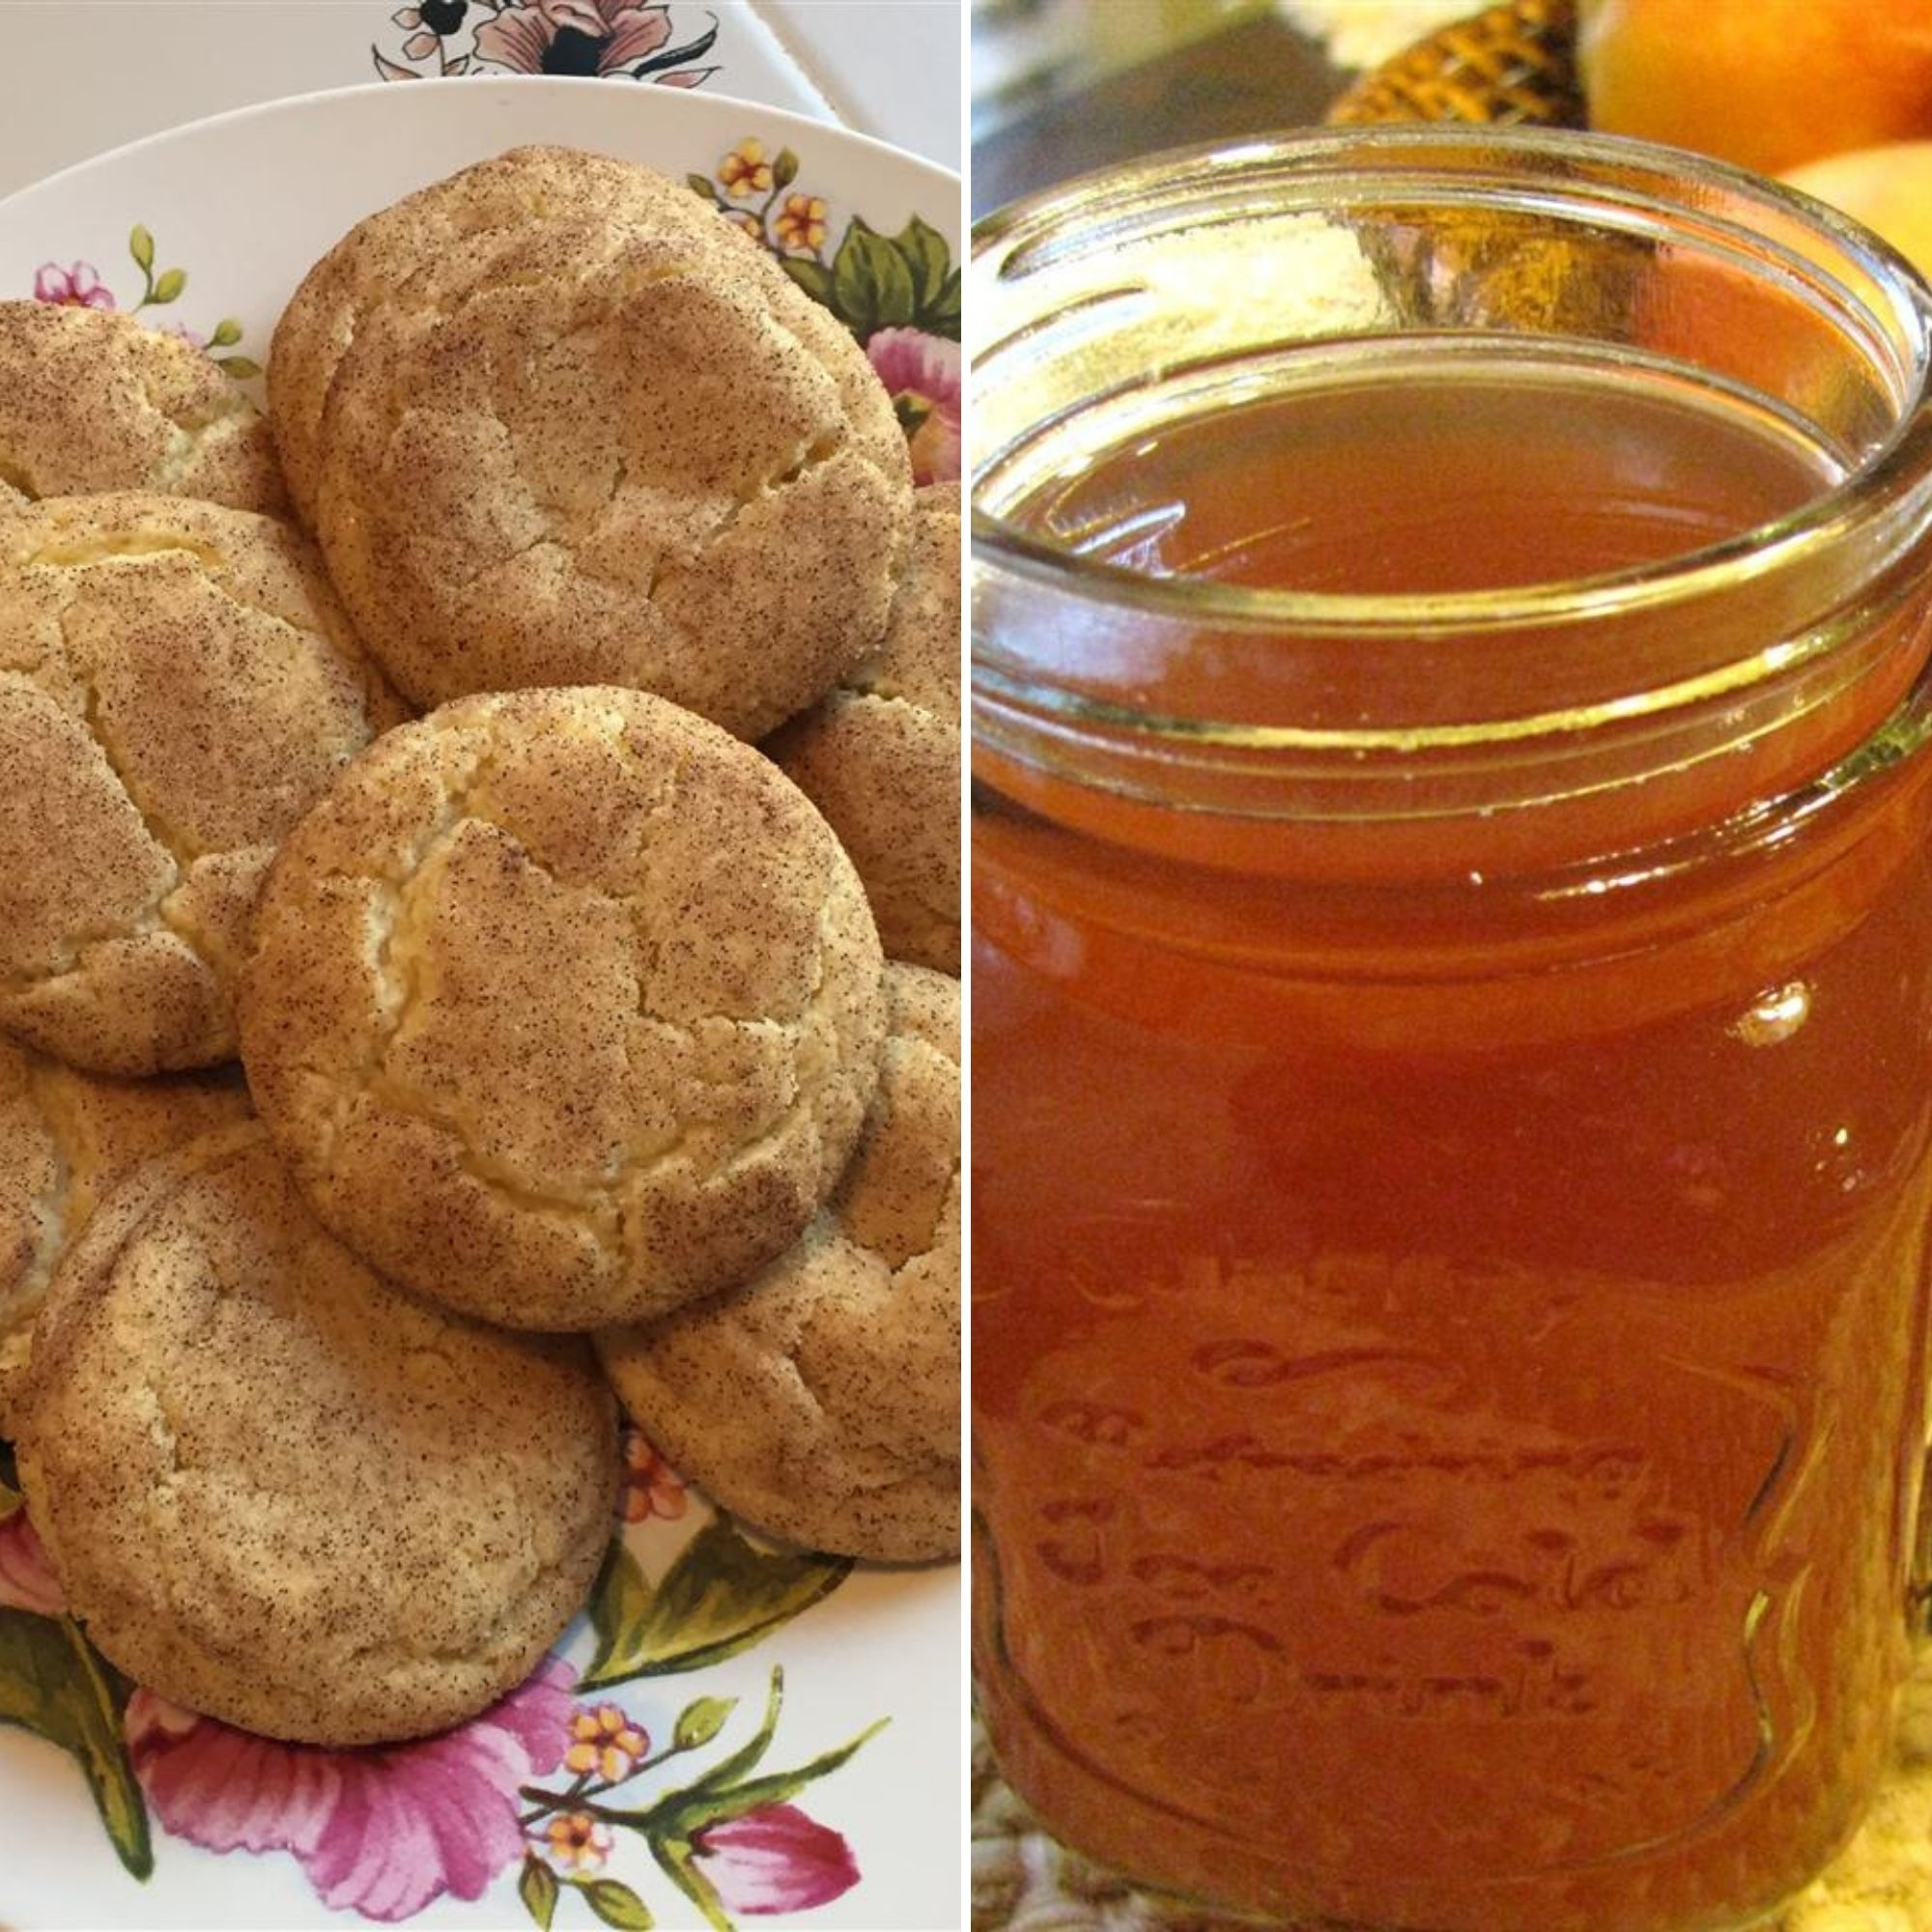 plate of Snickerdoodles and a glass of Apple Cider